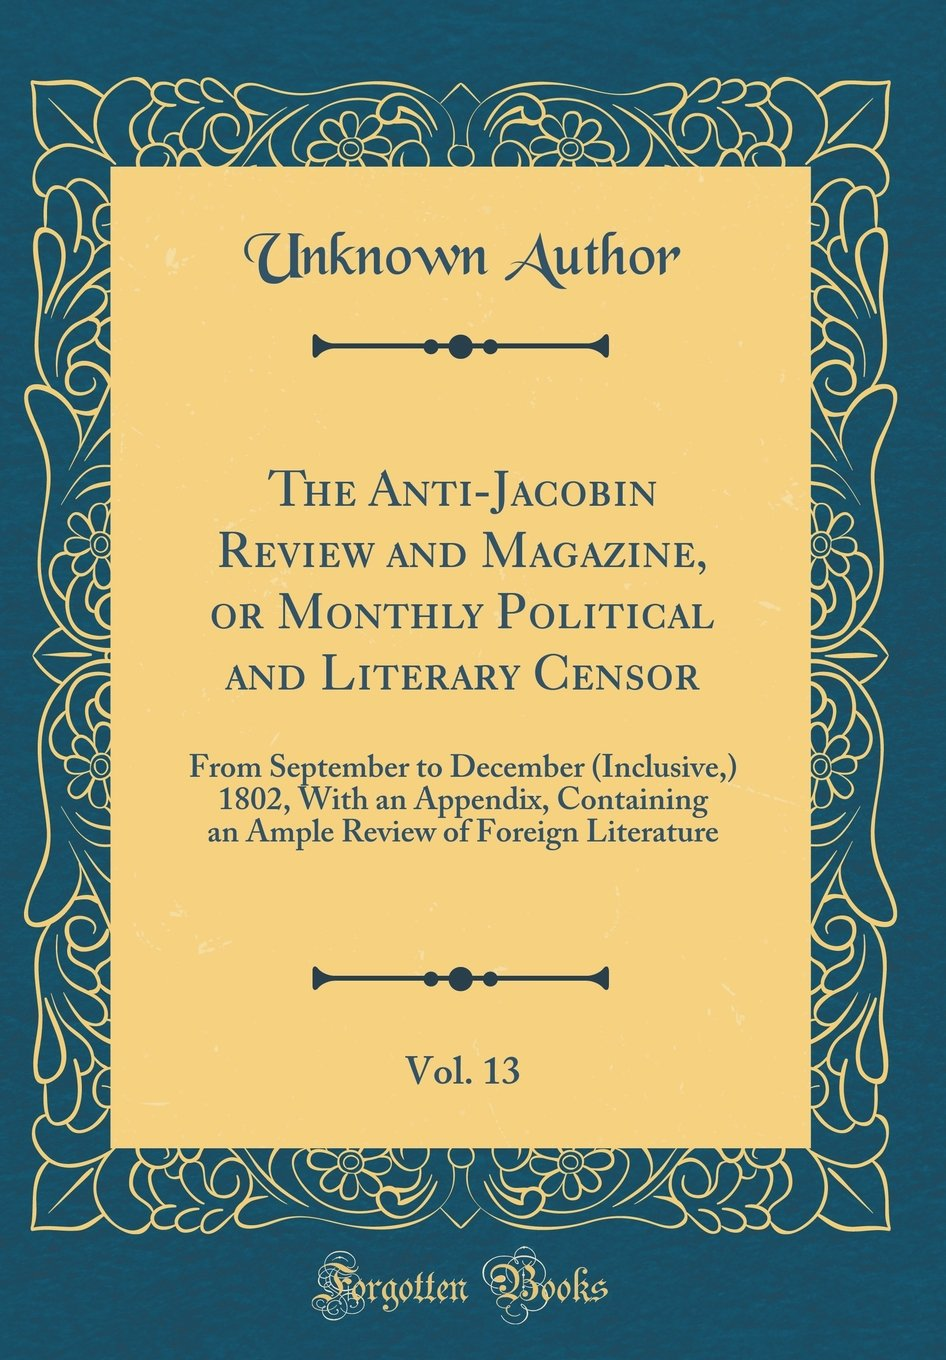 Download The Anti-Jacobin Review and Magazine, or Monthly Political and Literary Censor, Vol. 13: From September to December (Inclusive,) 1802, With an ... of Foreign Literature (Classic Reprint) ebook